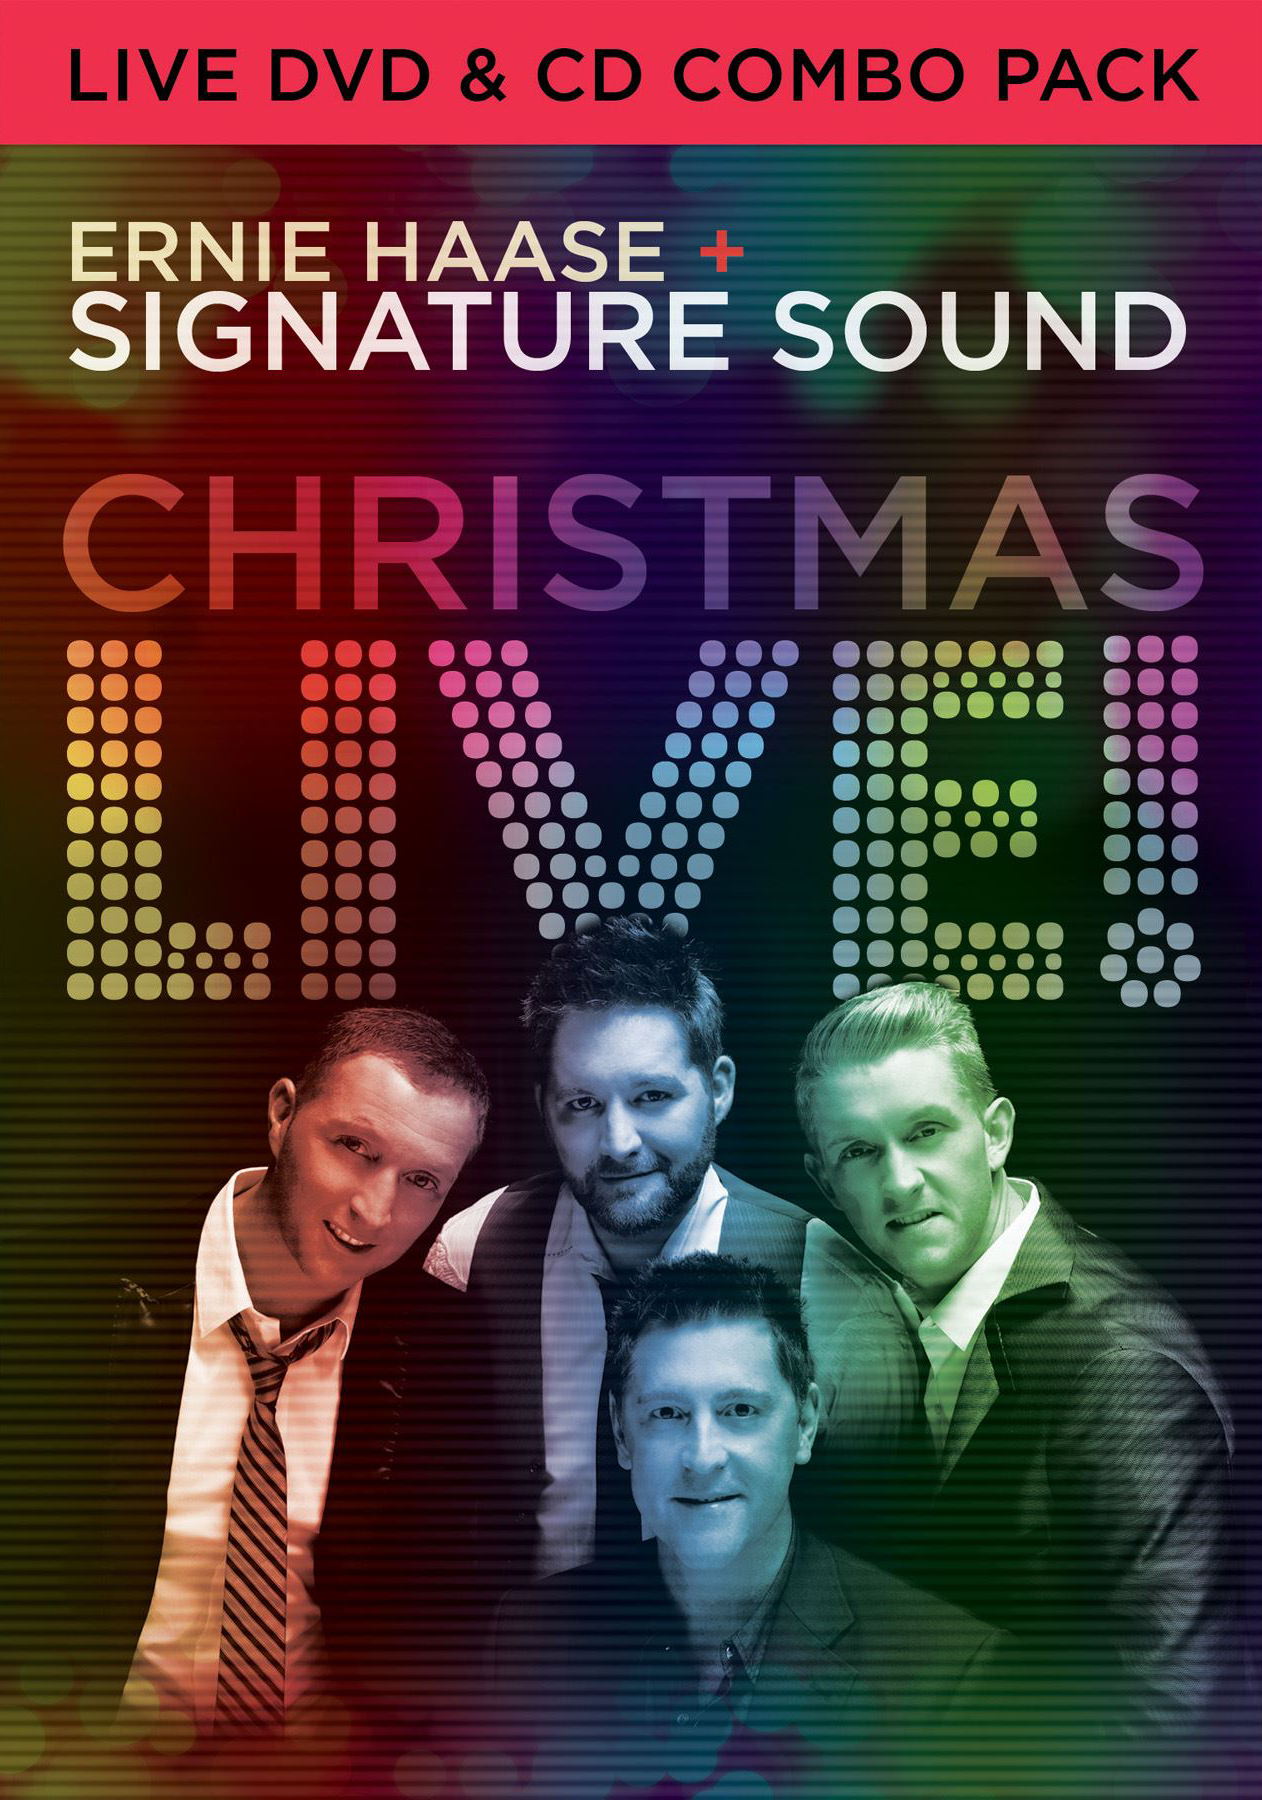 Ernie Haase Signature Sound Christmas Live! CD and DVD